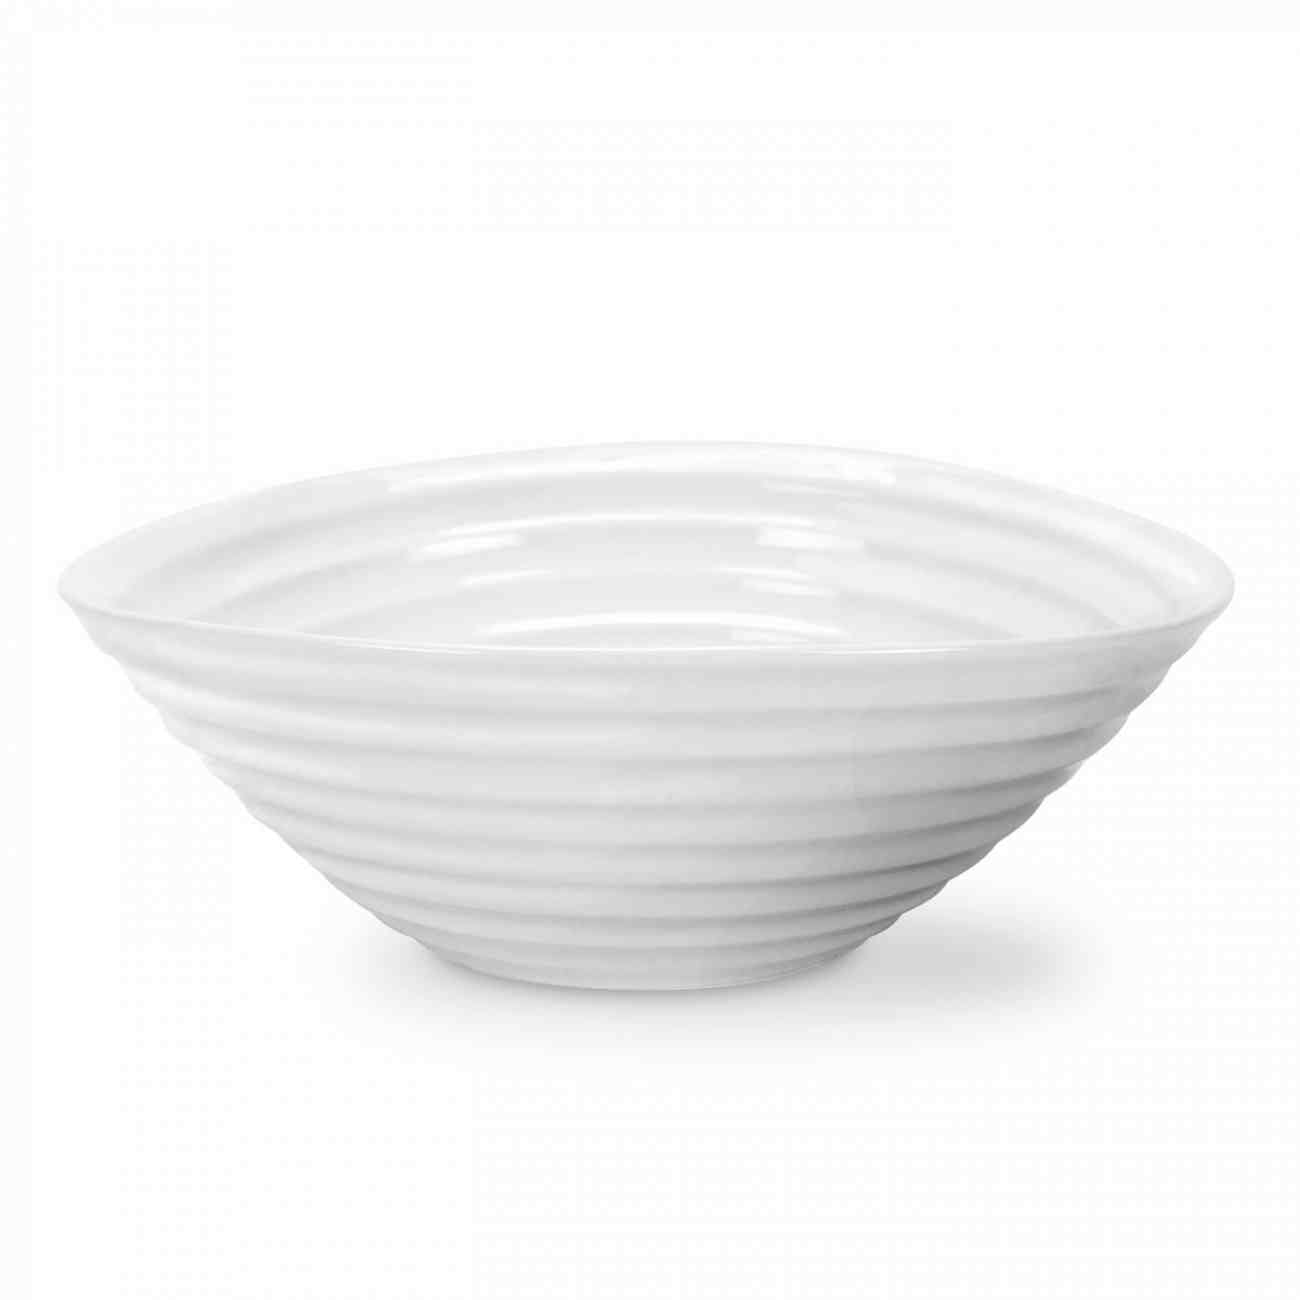 """SOPHIE CONRAN BOWLS CEREAL SET/4 - 19cm/7.5"""" CPW76808 -X"""